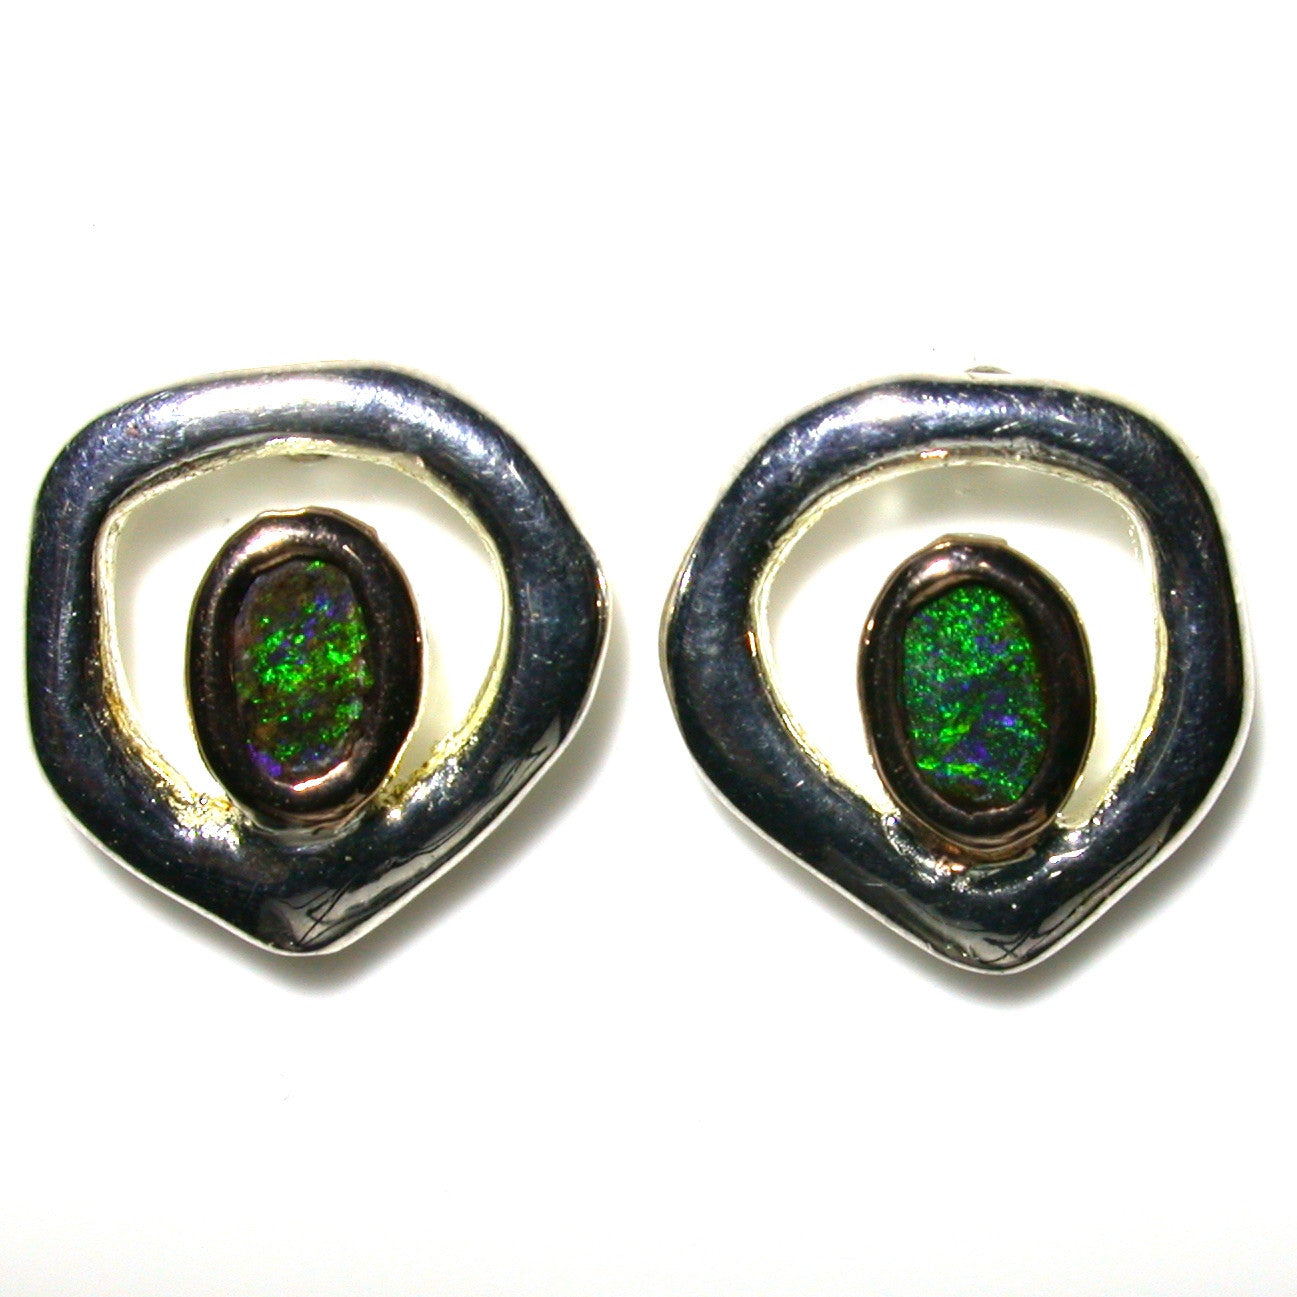 Green solid boulder opals set in sterling silver stud earrings